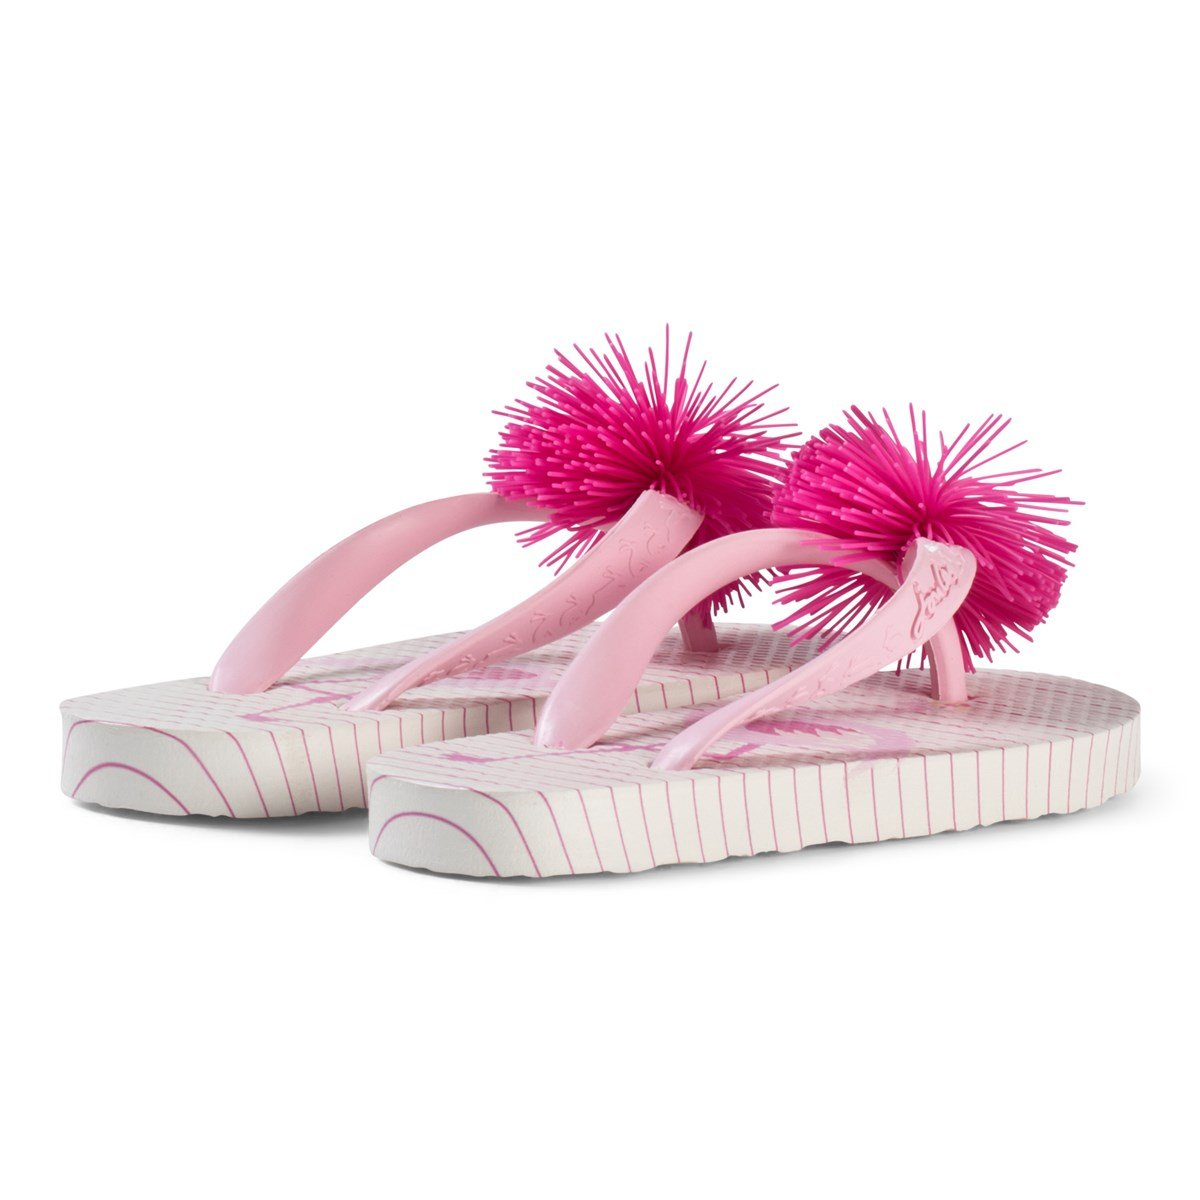 cc14df0db22c38 Tom Joule - Pink Flamingo and Stripe Print Pom Pom Flip Flops - Babyshop.com